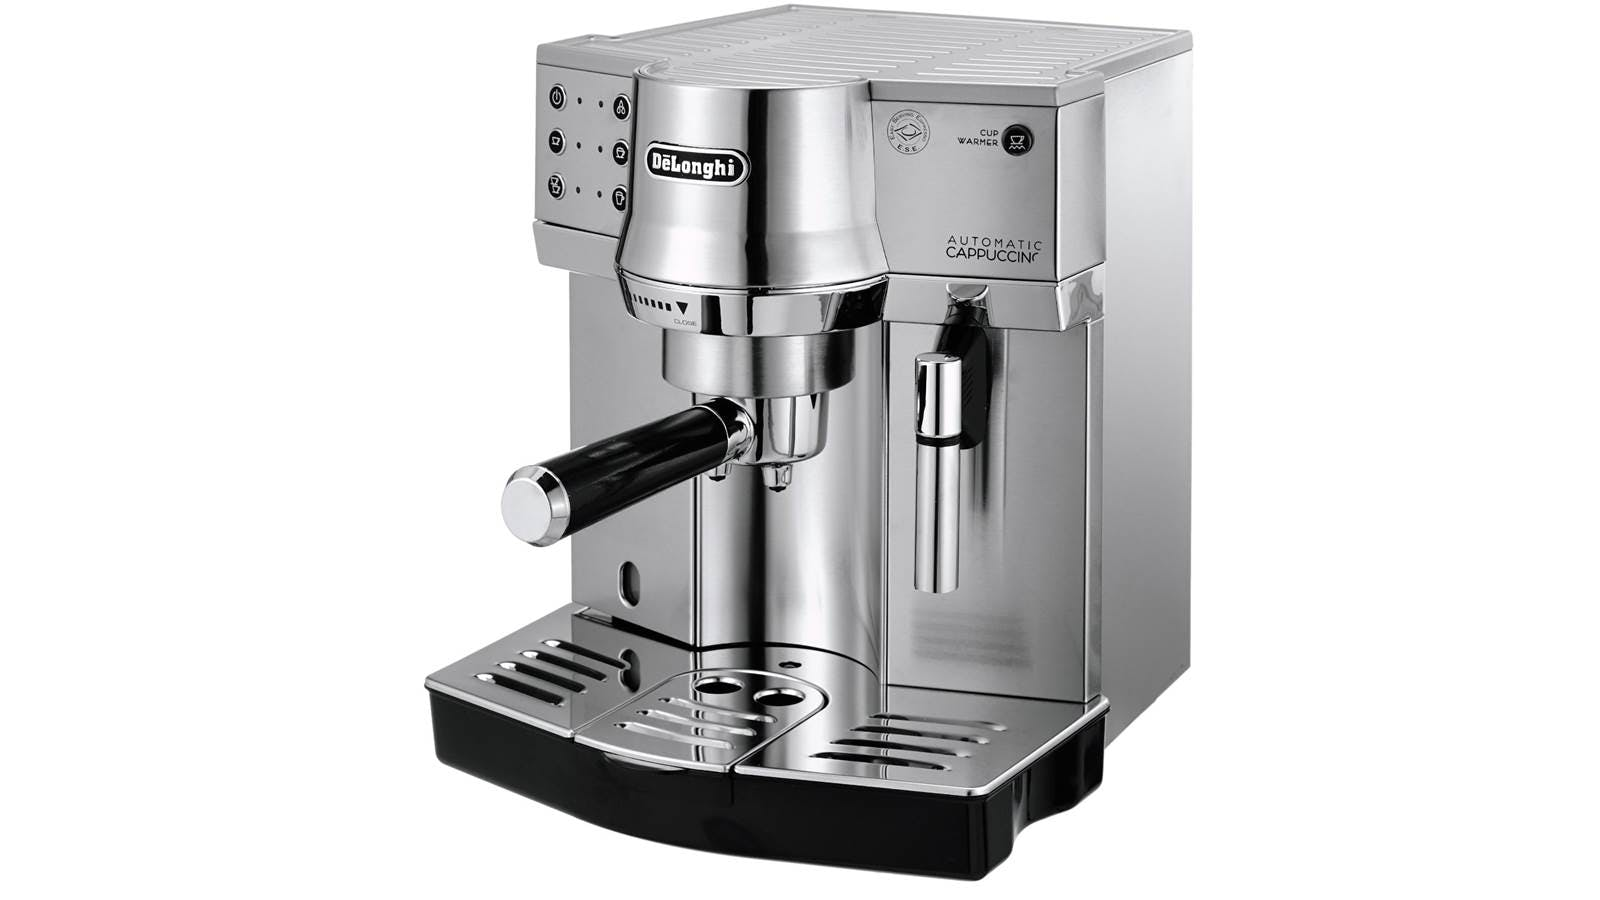 De Longhi Ec860 M Coffee Machine Harvey Norman Malaysia